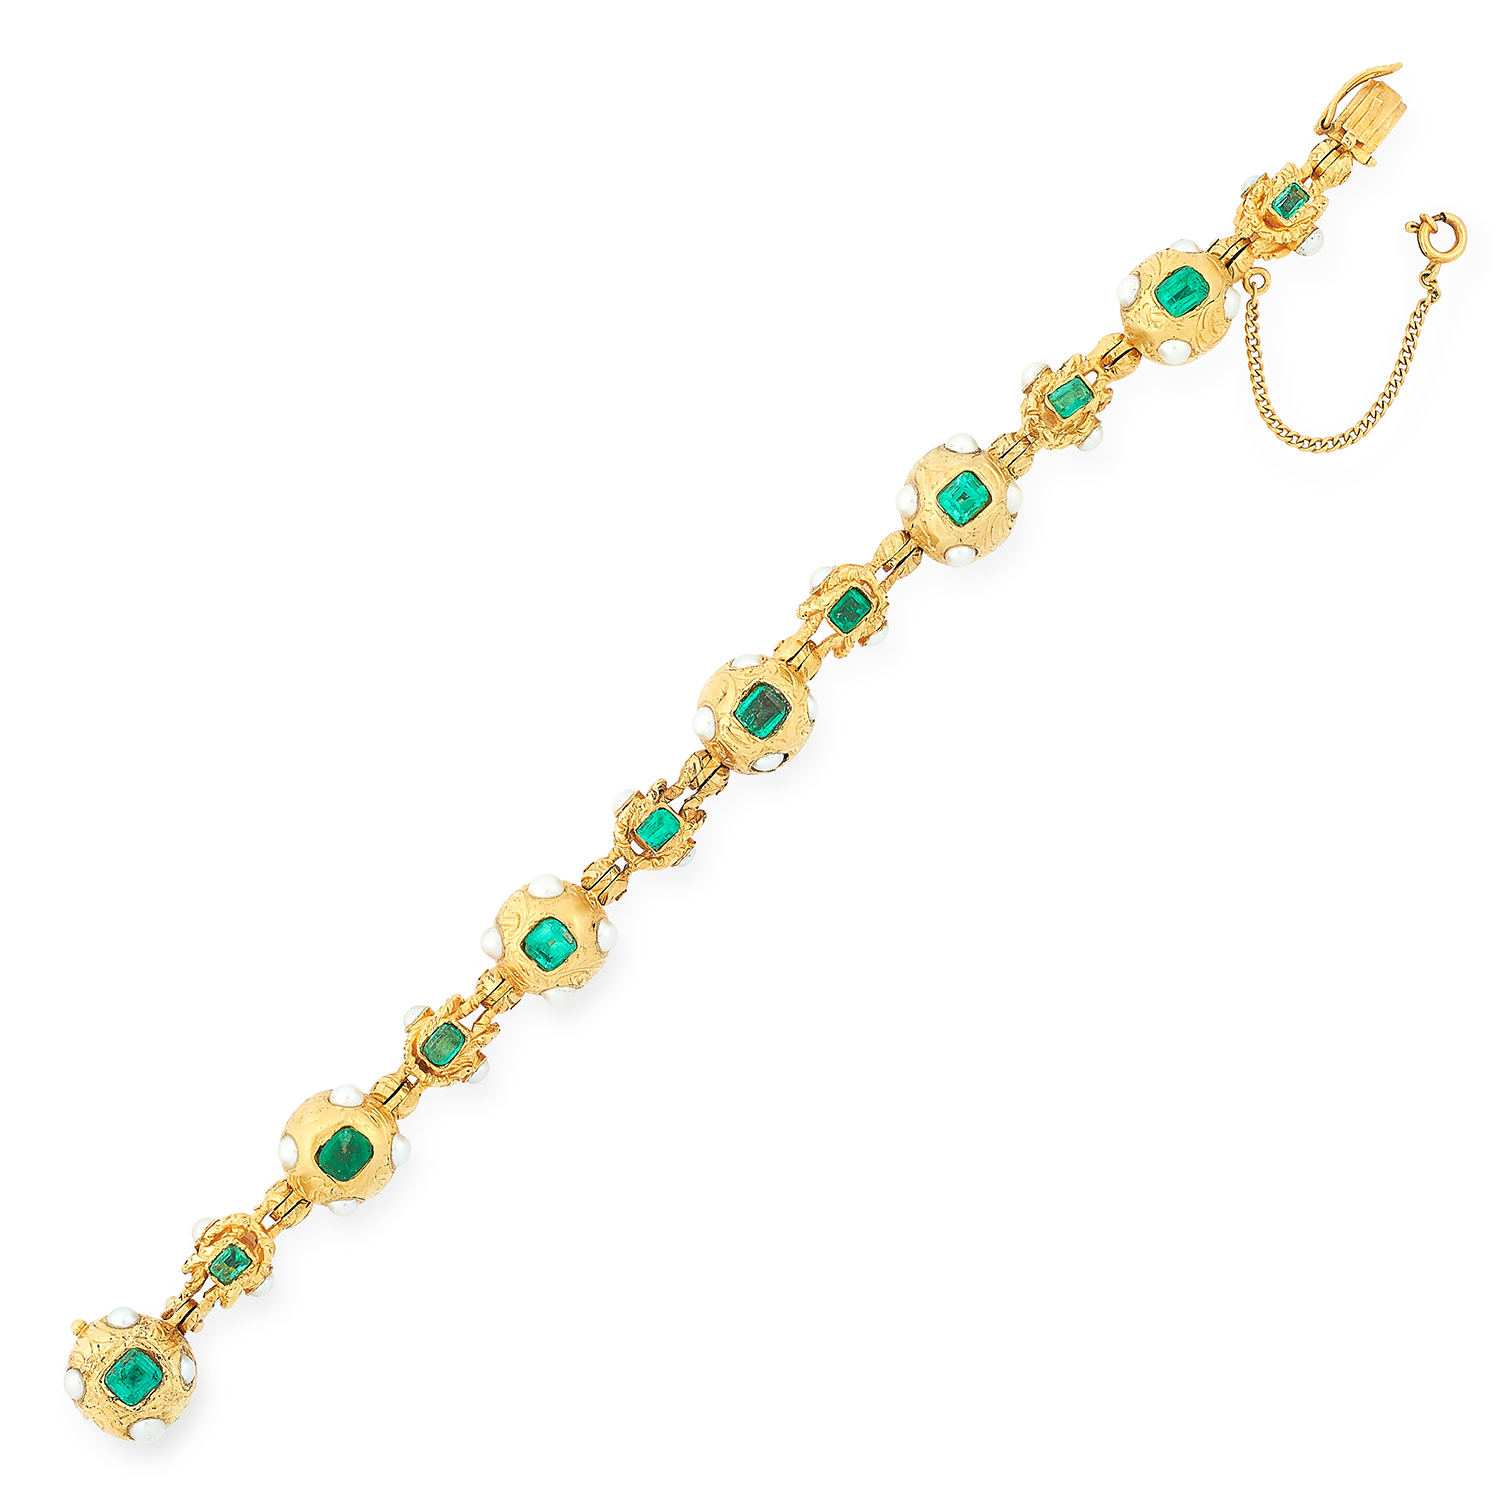 Los 43 - EMERALD AND PEARL BRACELET comprising of gold beads set with emerald cut emeralds and pearls,